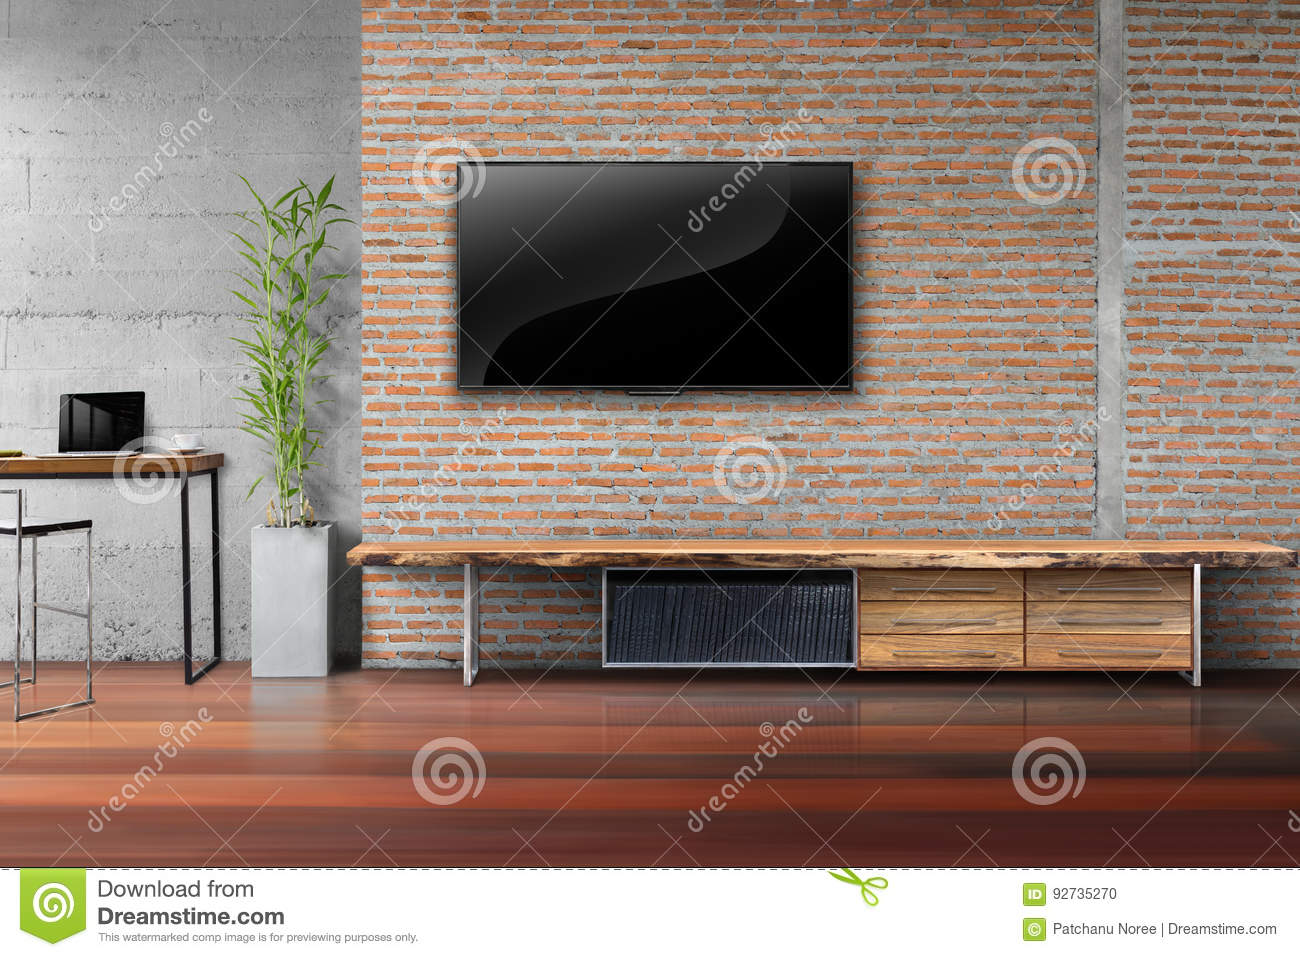 salon tv sur le mur de briques rouge avec la table en bois photo stock image du vide d cor. Black Bedroom Furniture Sets. Home Design Ideas